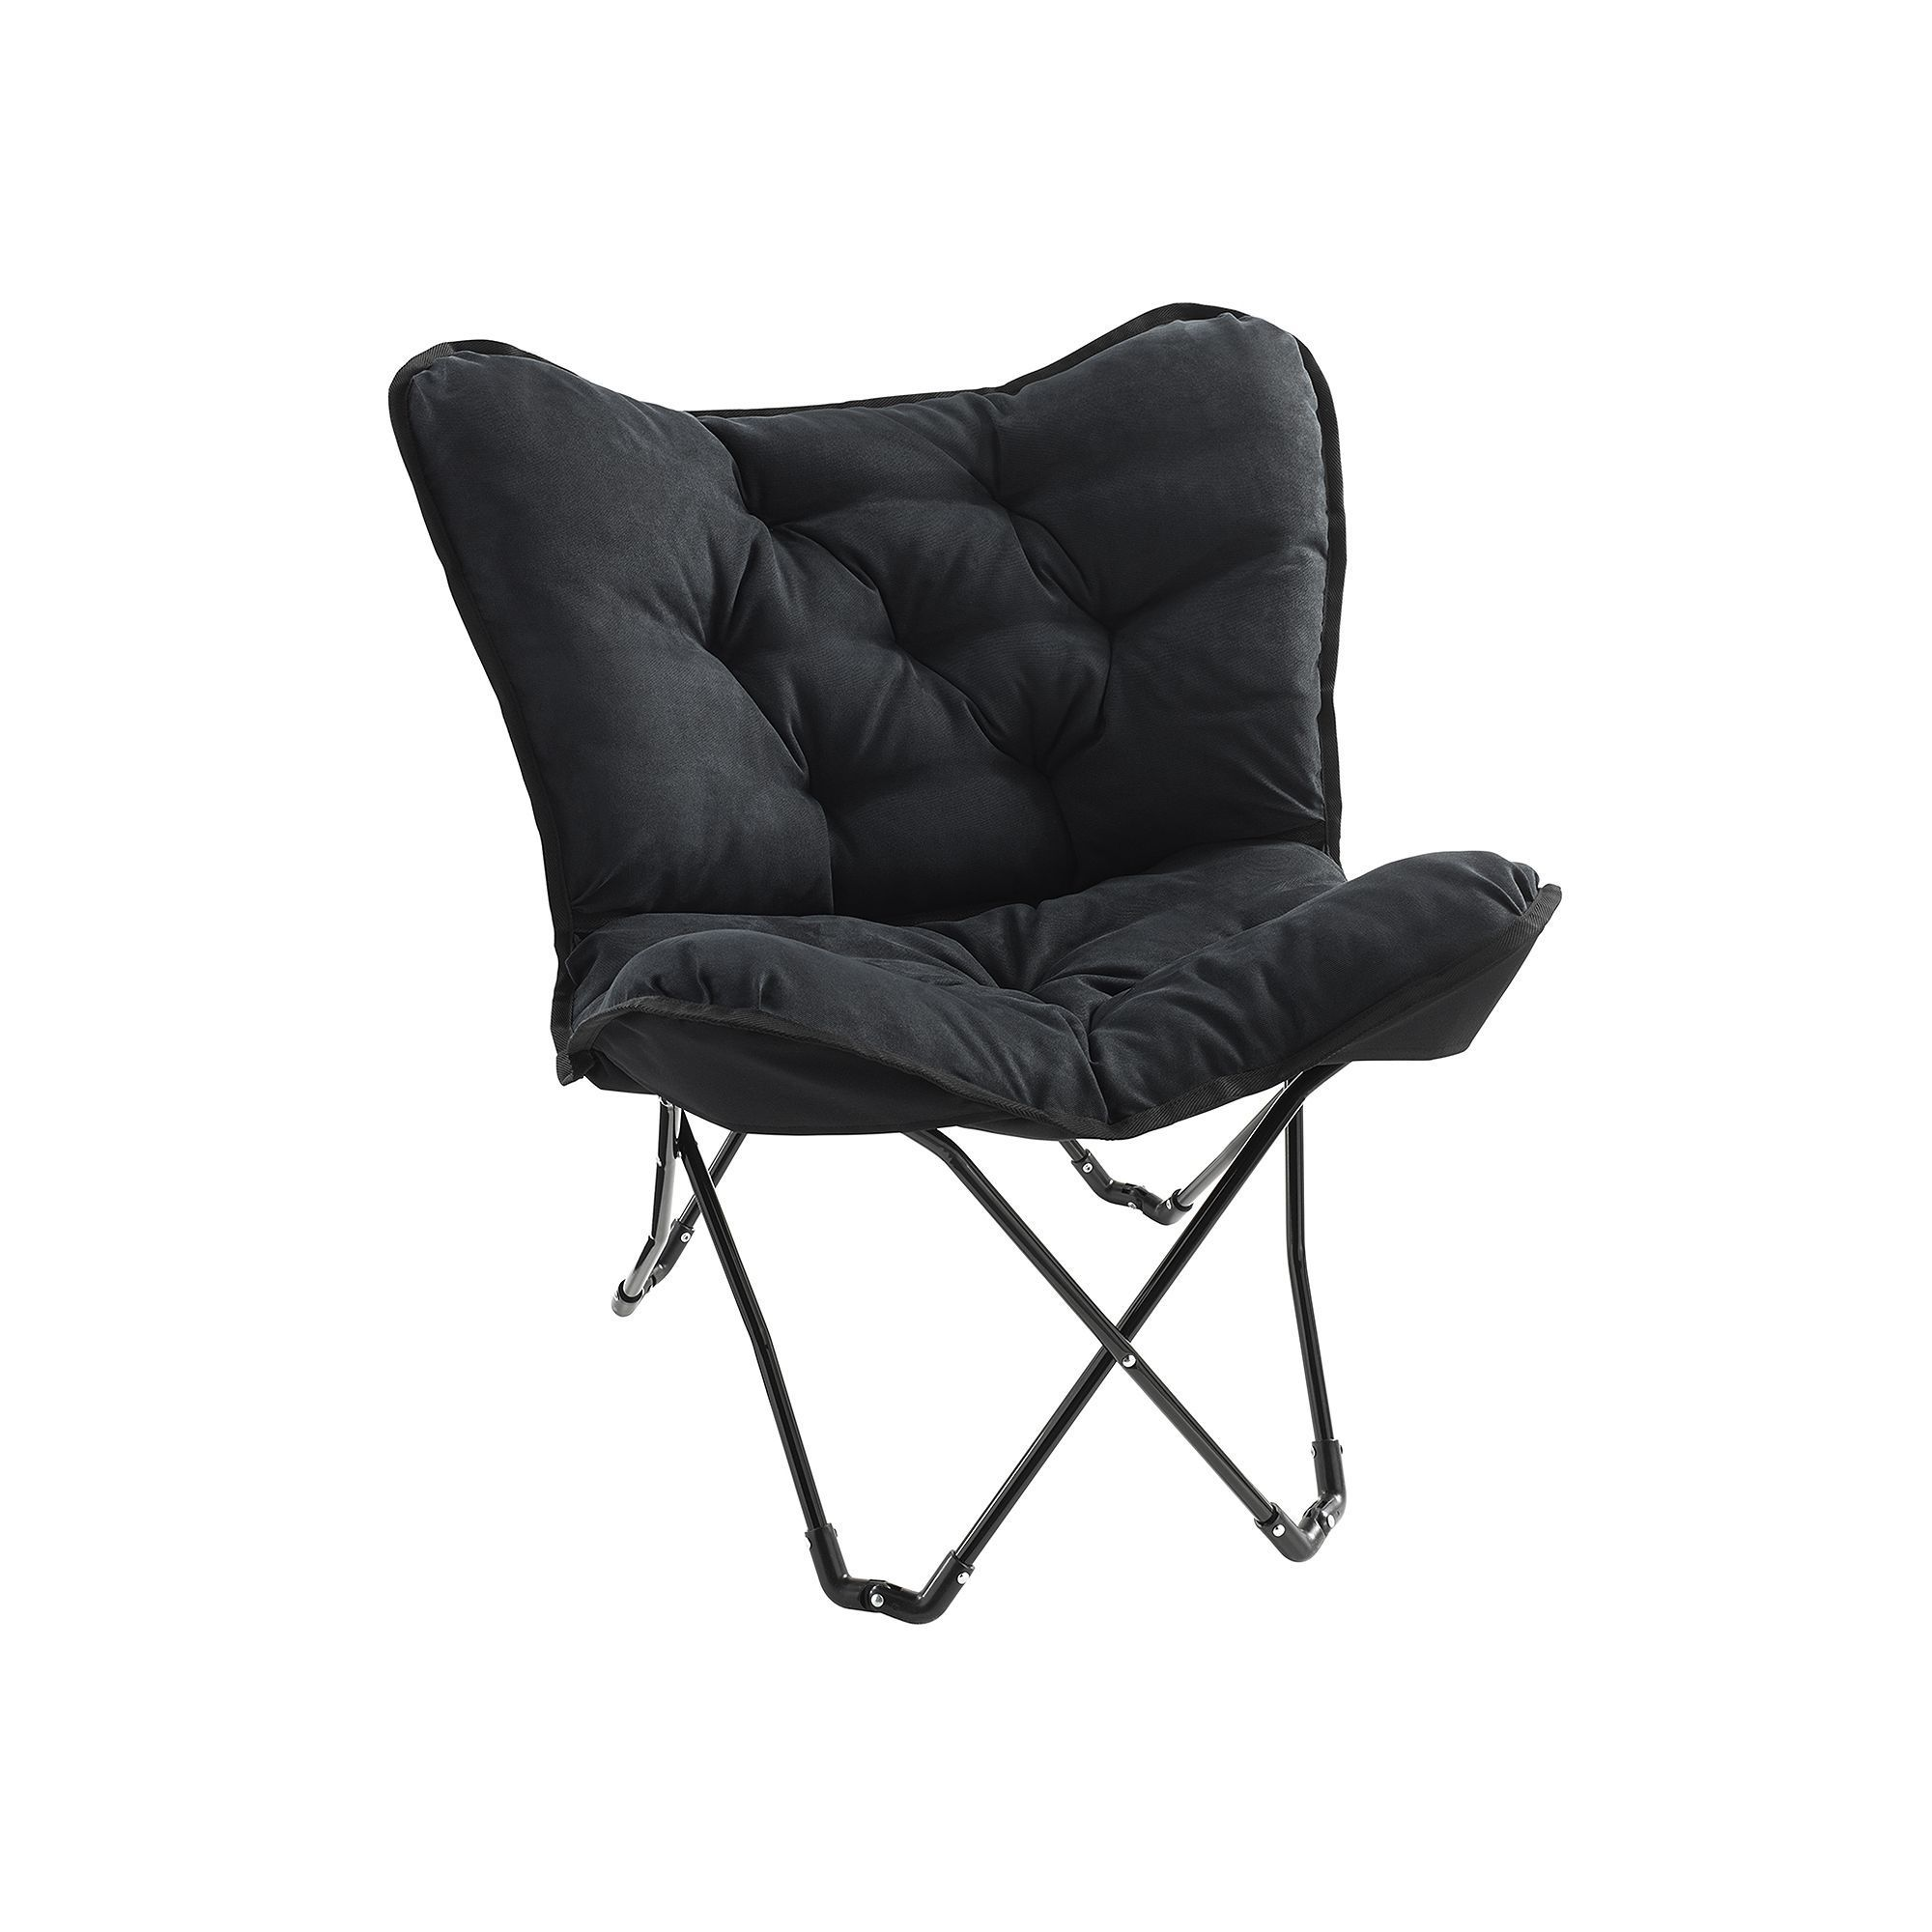 Dorm Chairs Kohls Neutral Posture Ergonomic Chair Simple By Design Memory Foam Butterfly Products Pinterest Black